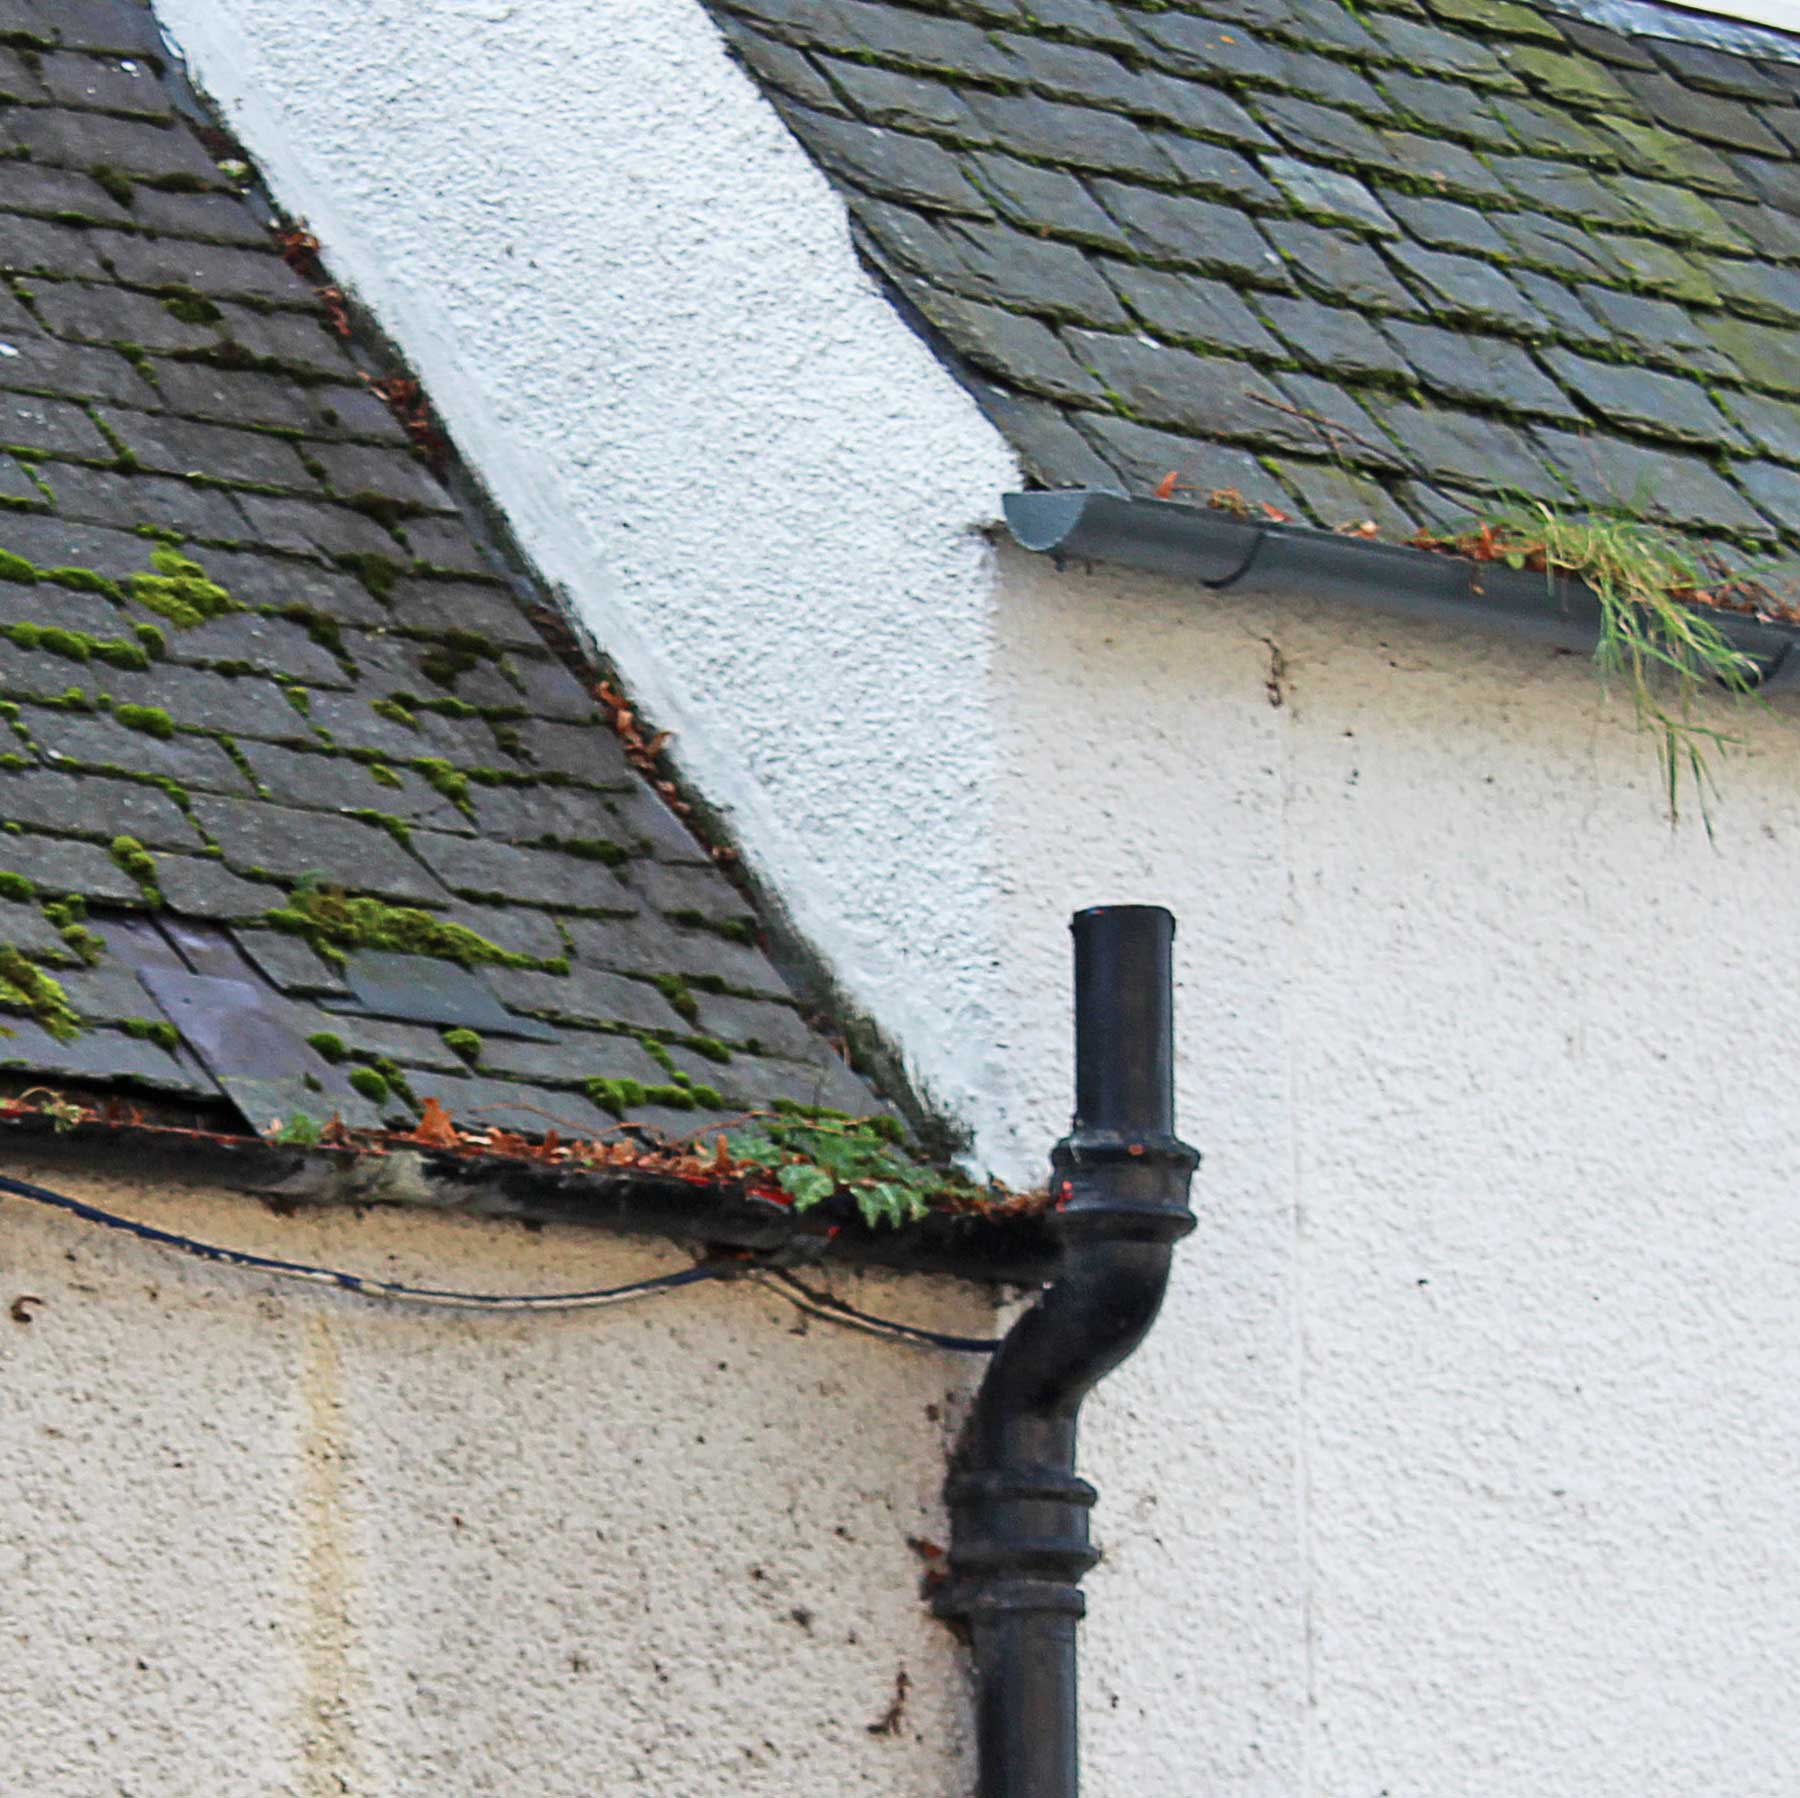 Picture showing blocked gutters and slipped slates, common maintenance issues which will create problems if not addressed quickly.